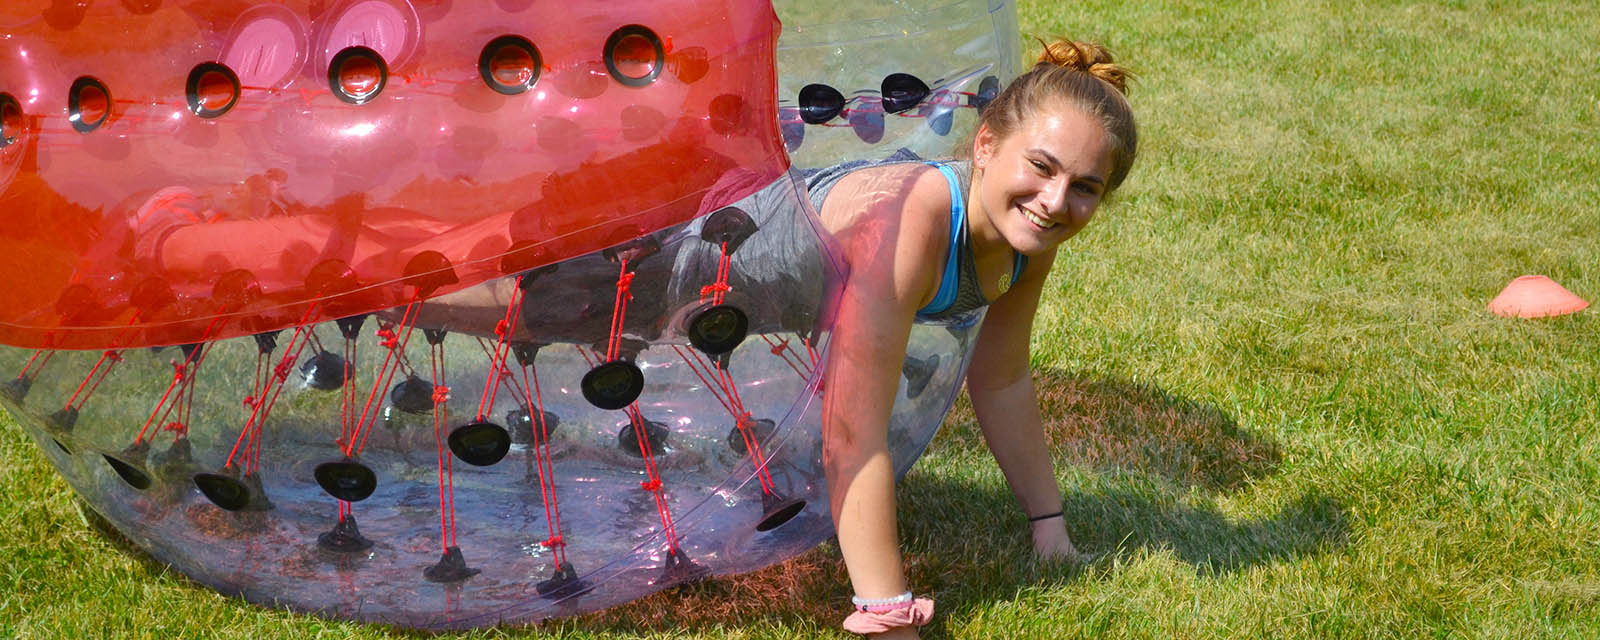 girl climbing out of giant soccer bubble